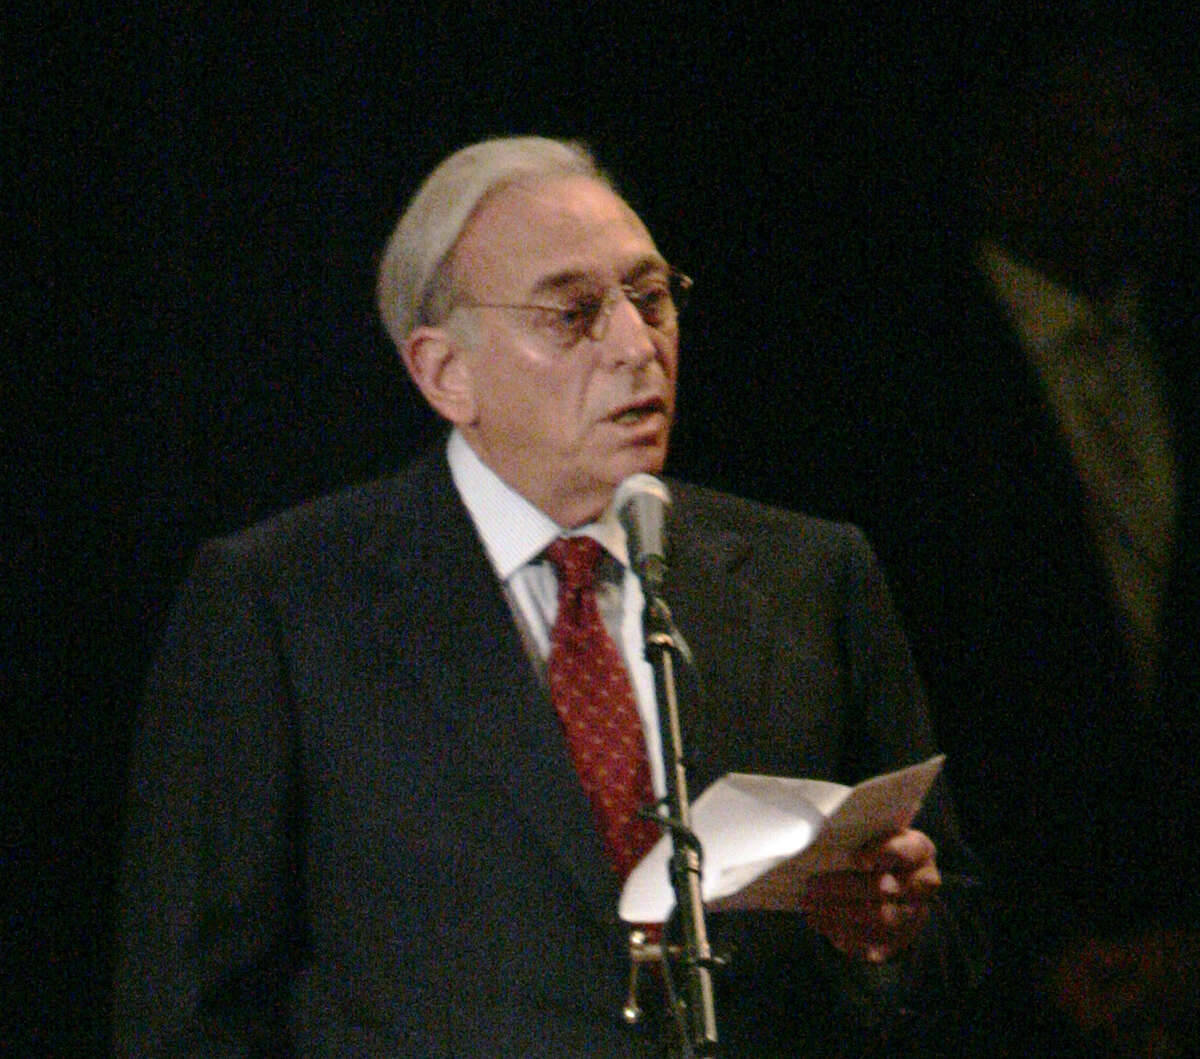 FILE - In this Aug. 16, 2006 file photo, Nelson Peltz addresses Heinz shareholders during the annual meeting in Pittsburgh. Trian Fund Management, run by Peltz, who helped push DuPont and Dow together on Friday, Dec. 11, 2015, a year after he argued the 200-year-old DuPont should be broken up into two companies. (AP Photo/Keith Srakocic, file) ORG XMIT: NY119